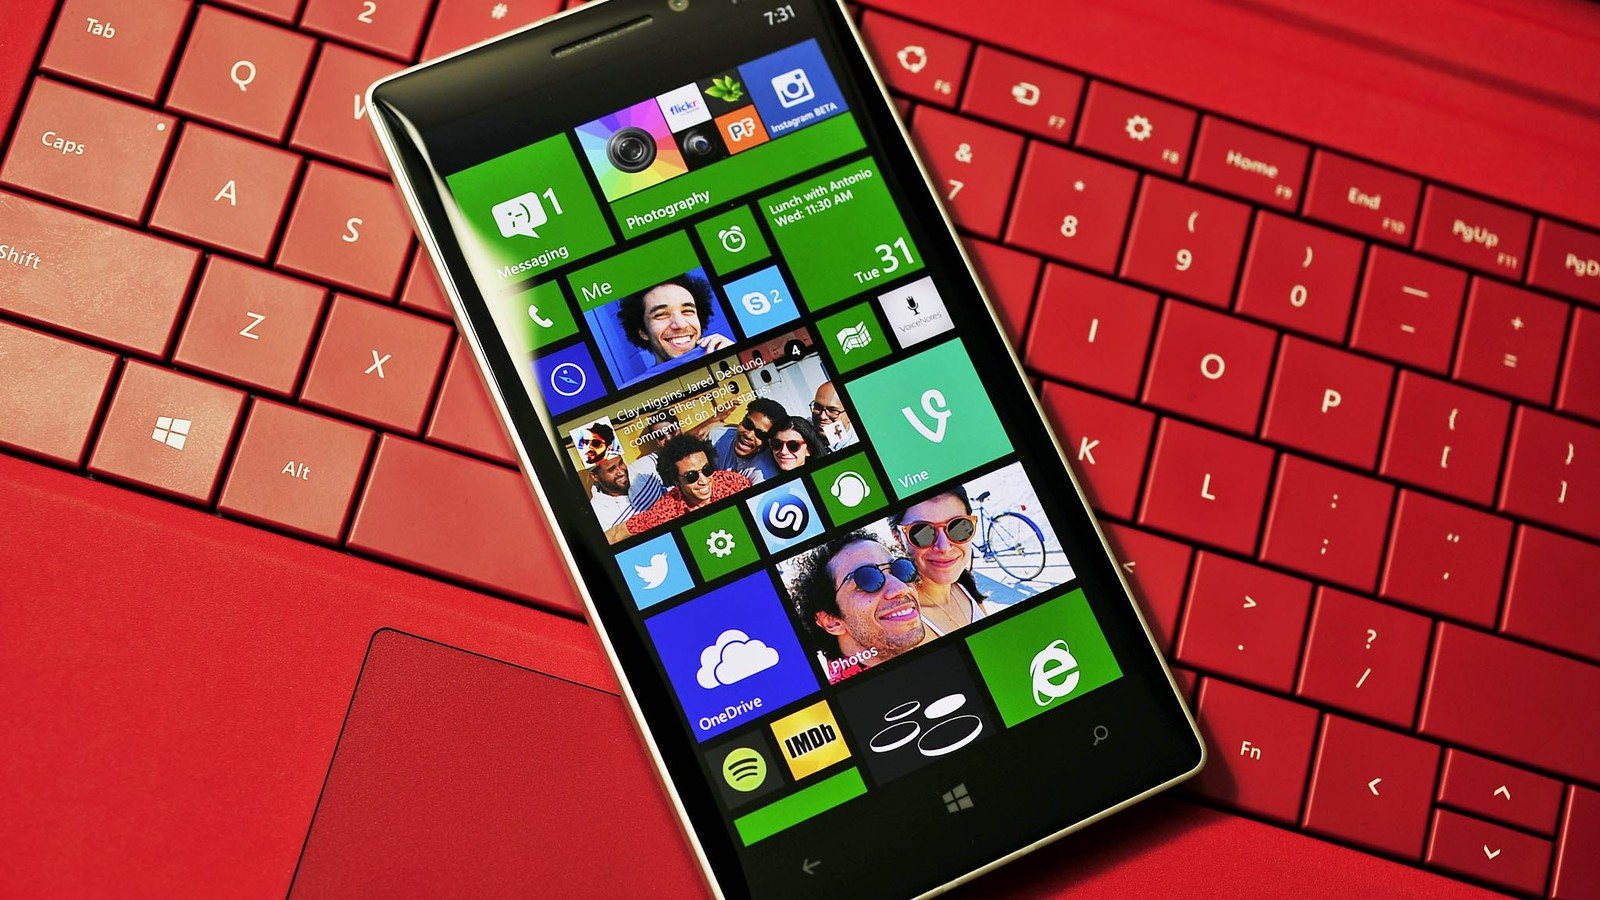 Update_1_WP81_Lede_Red_Live_Folders